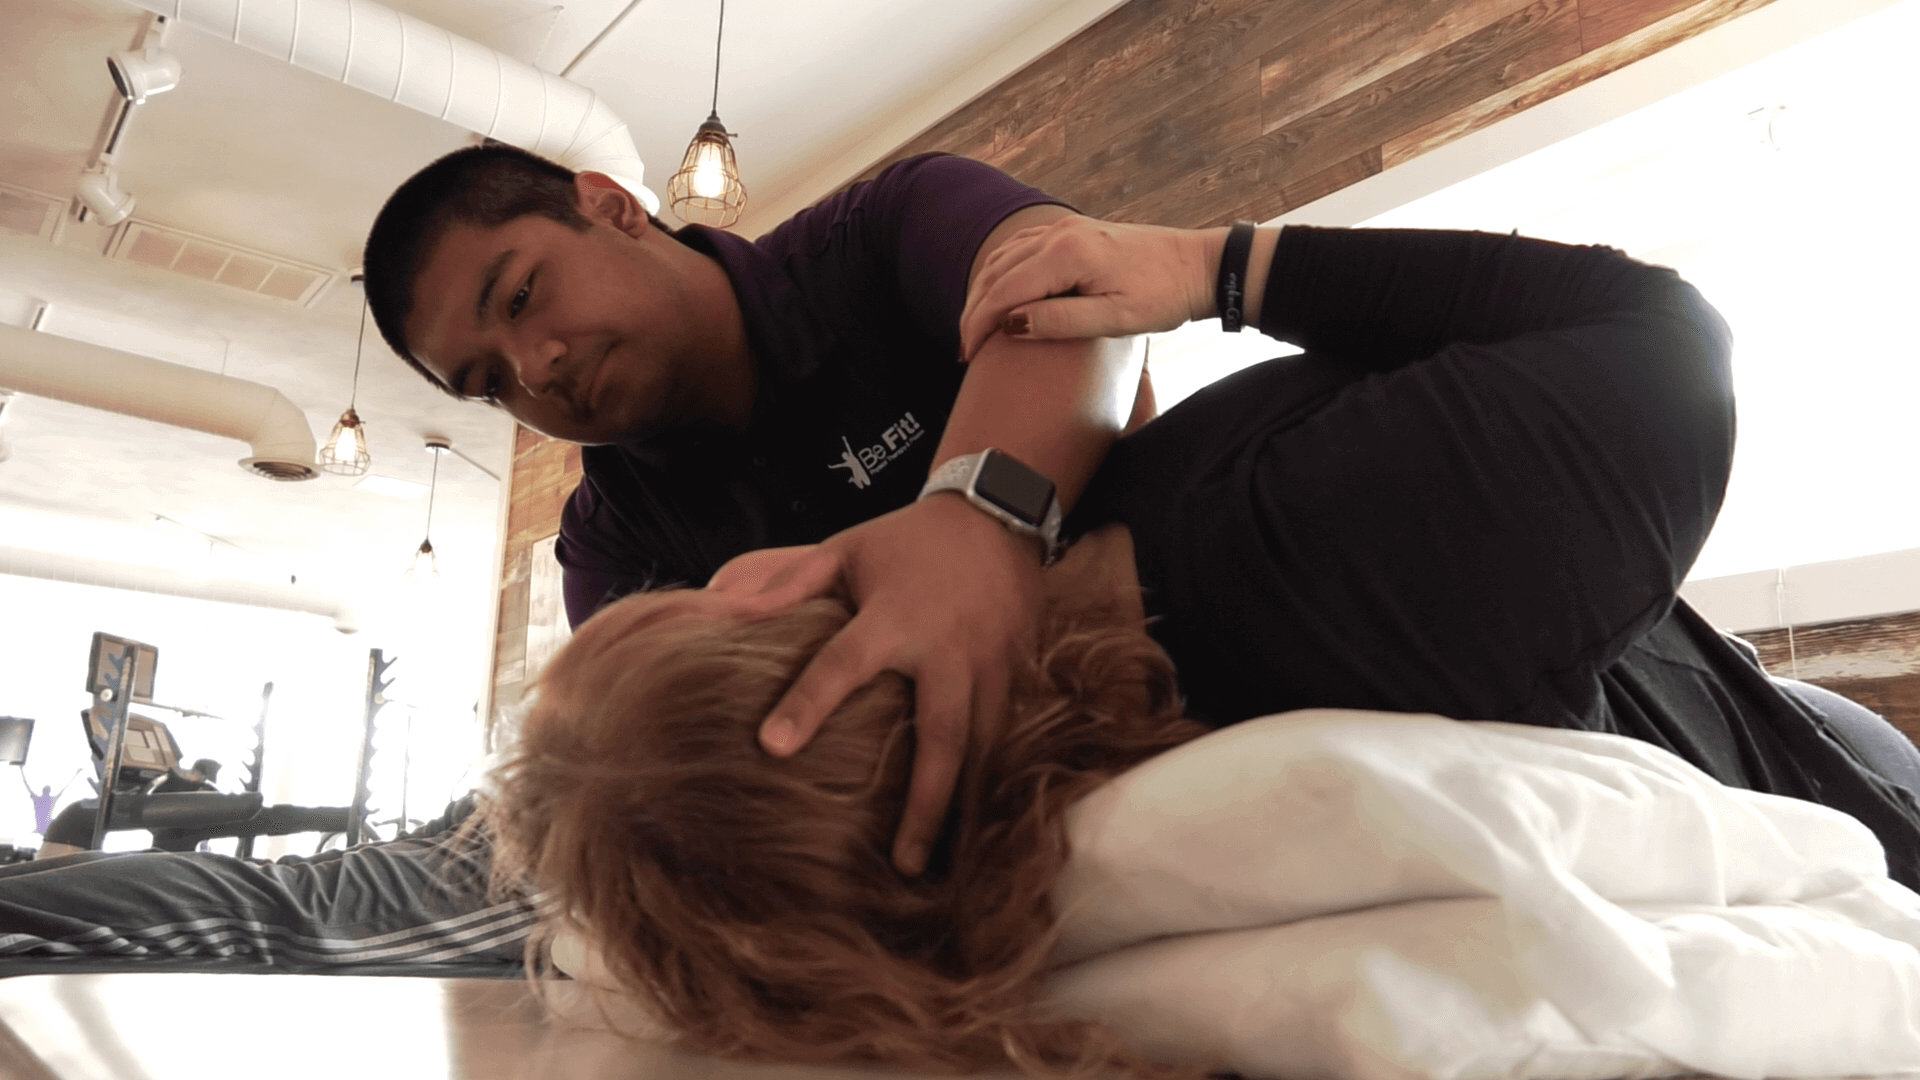 What's Wrong With Manual Therapy?